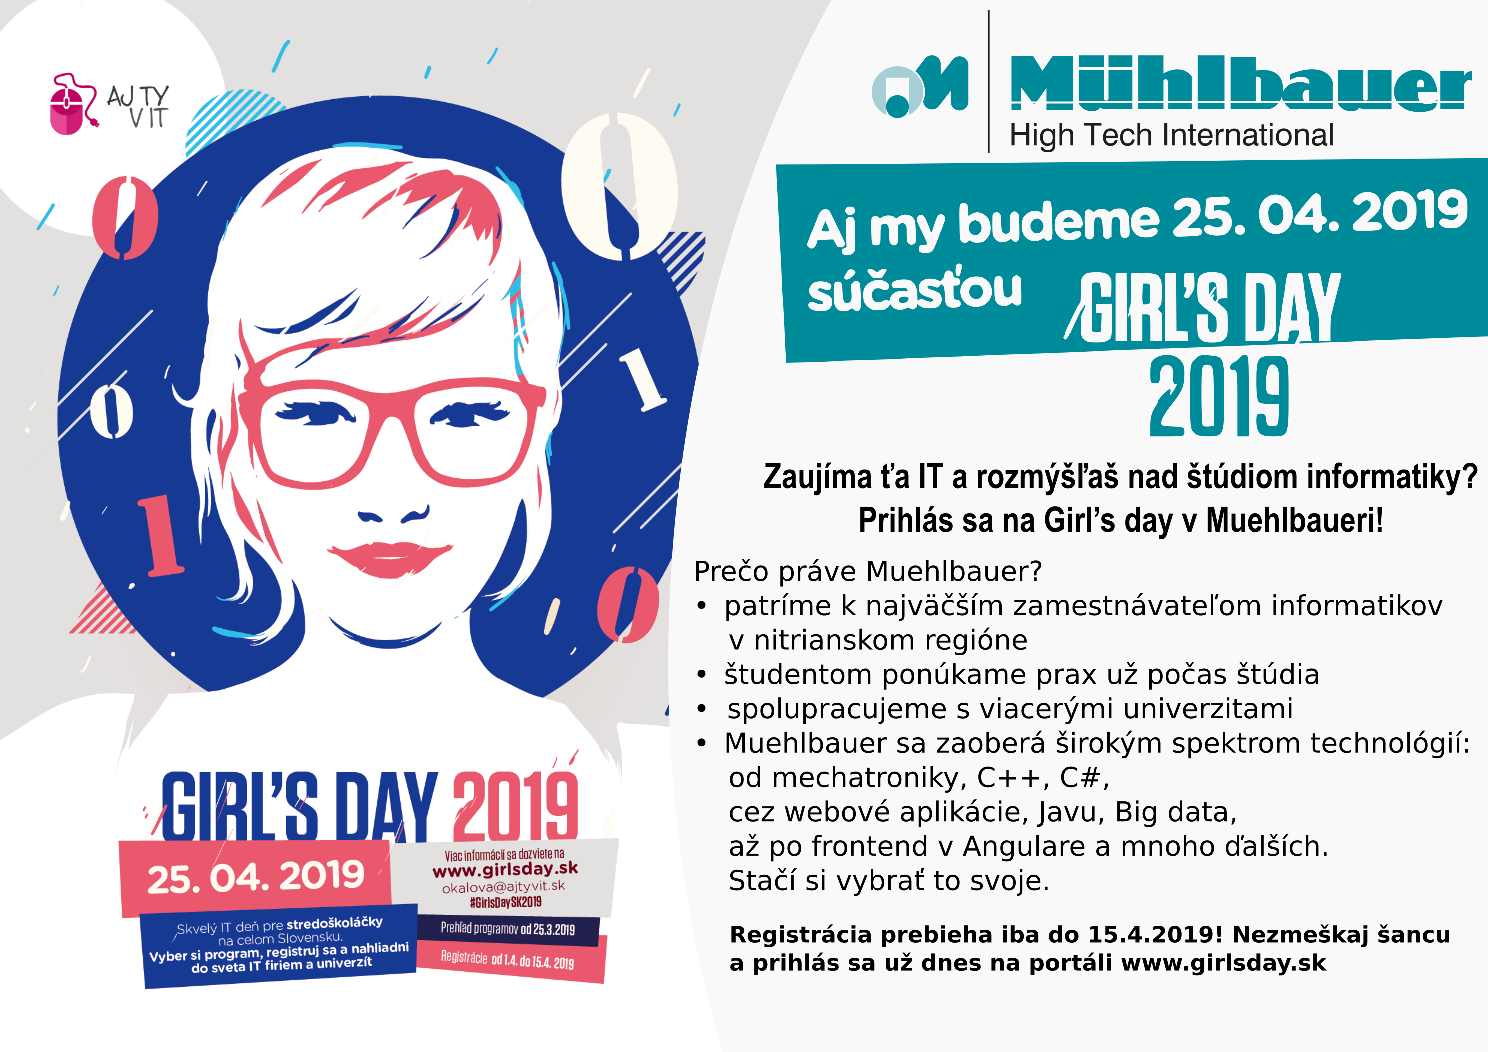 girlsday 2019 externalv2